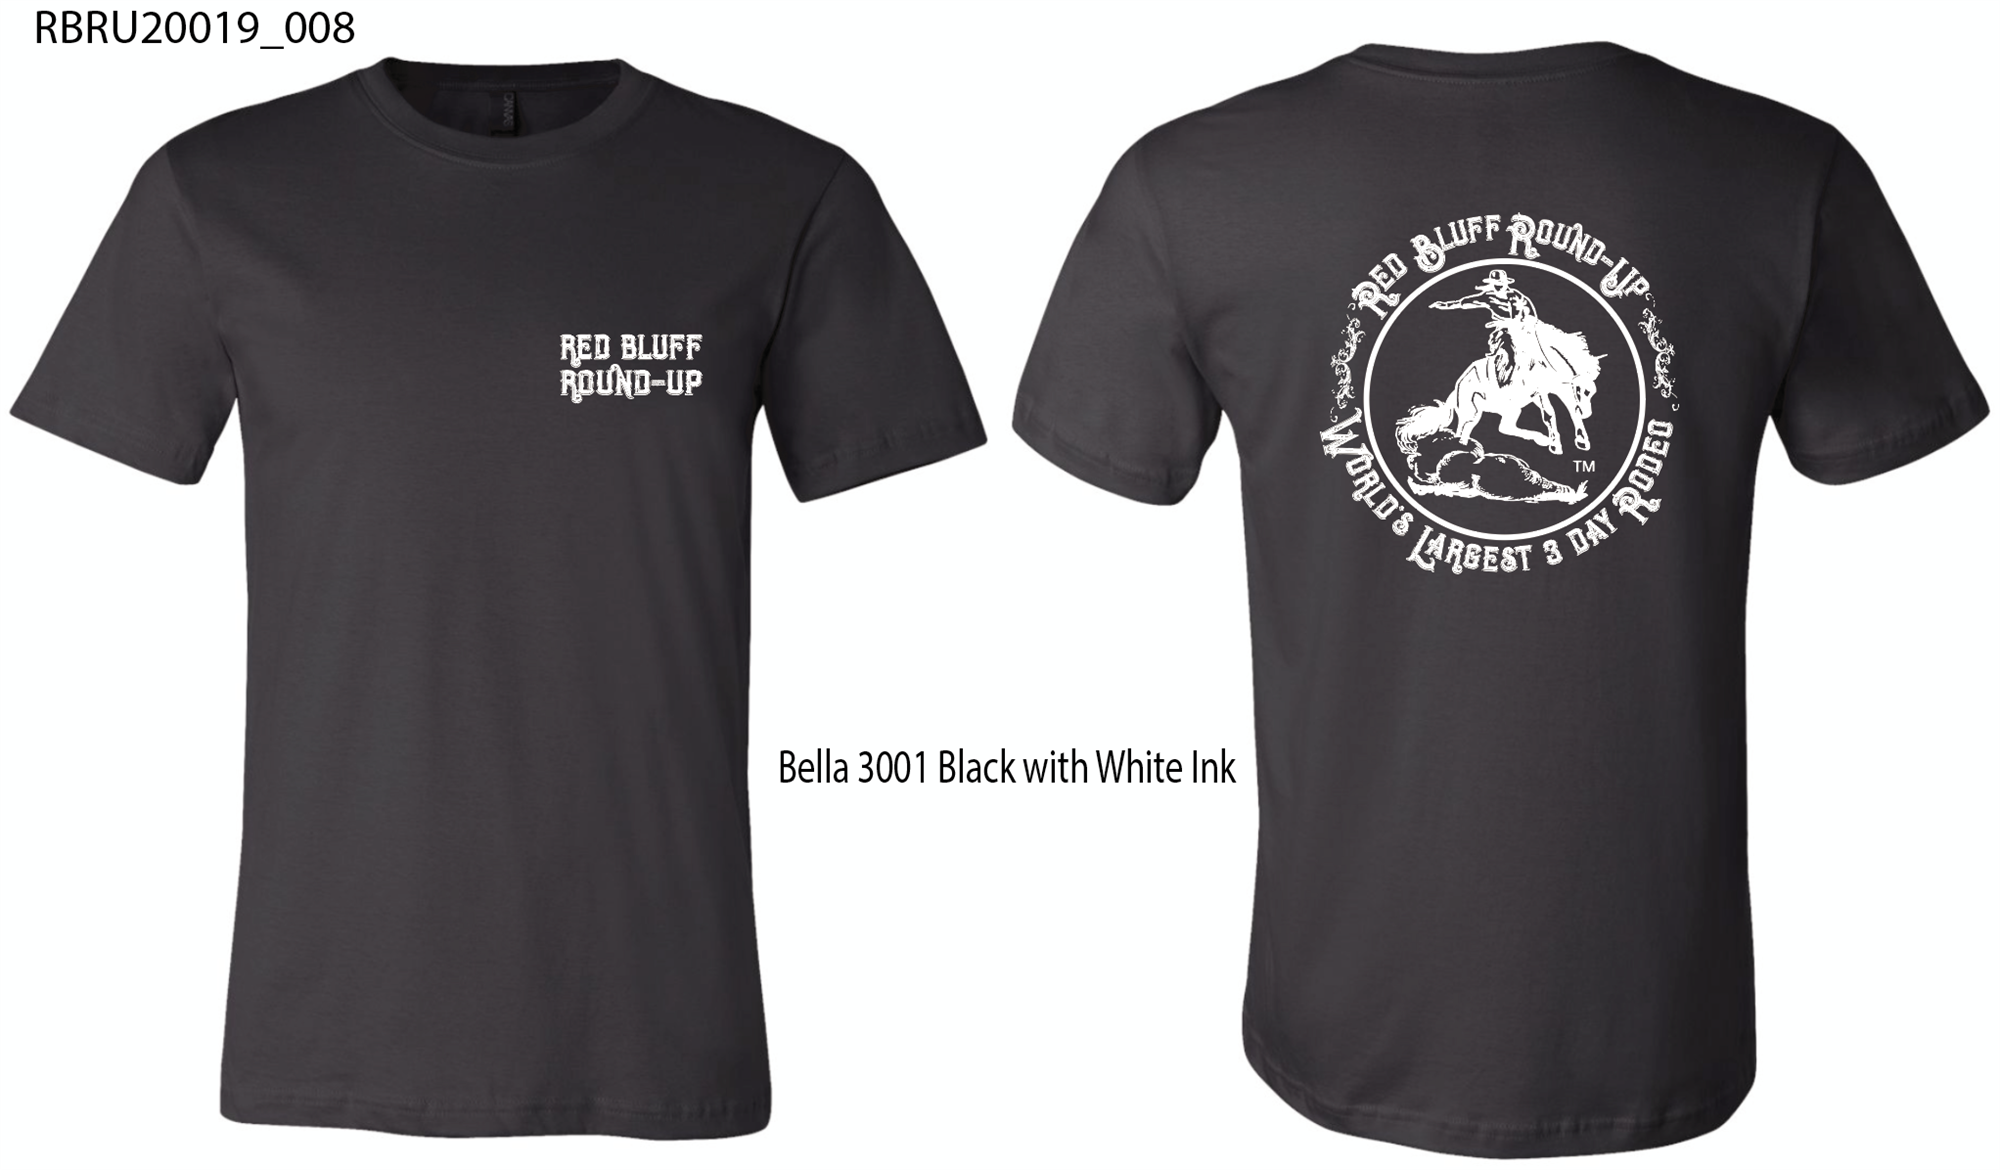 Largest 3-Day Rodeo - Tee